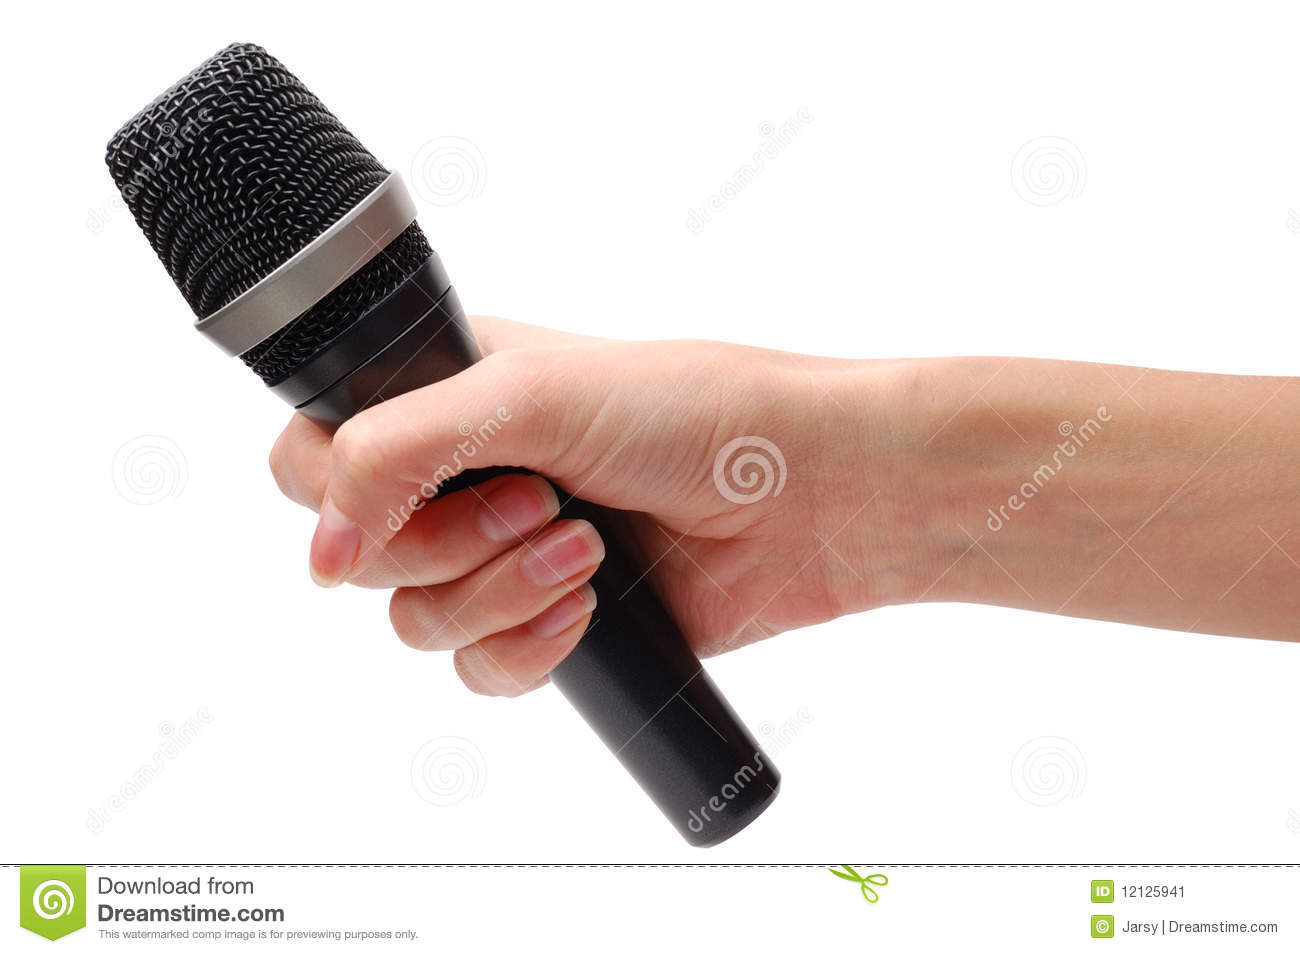 Microphone In Hand : Microphone in hand stock image